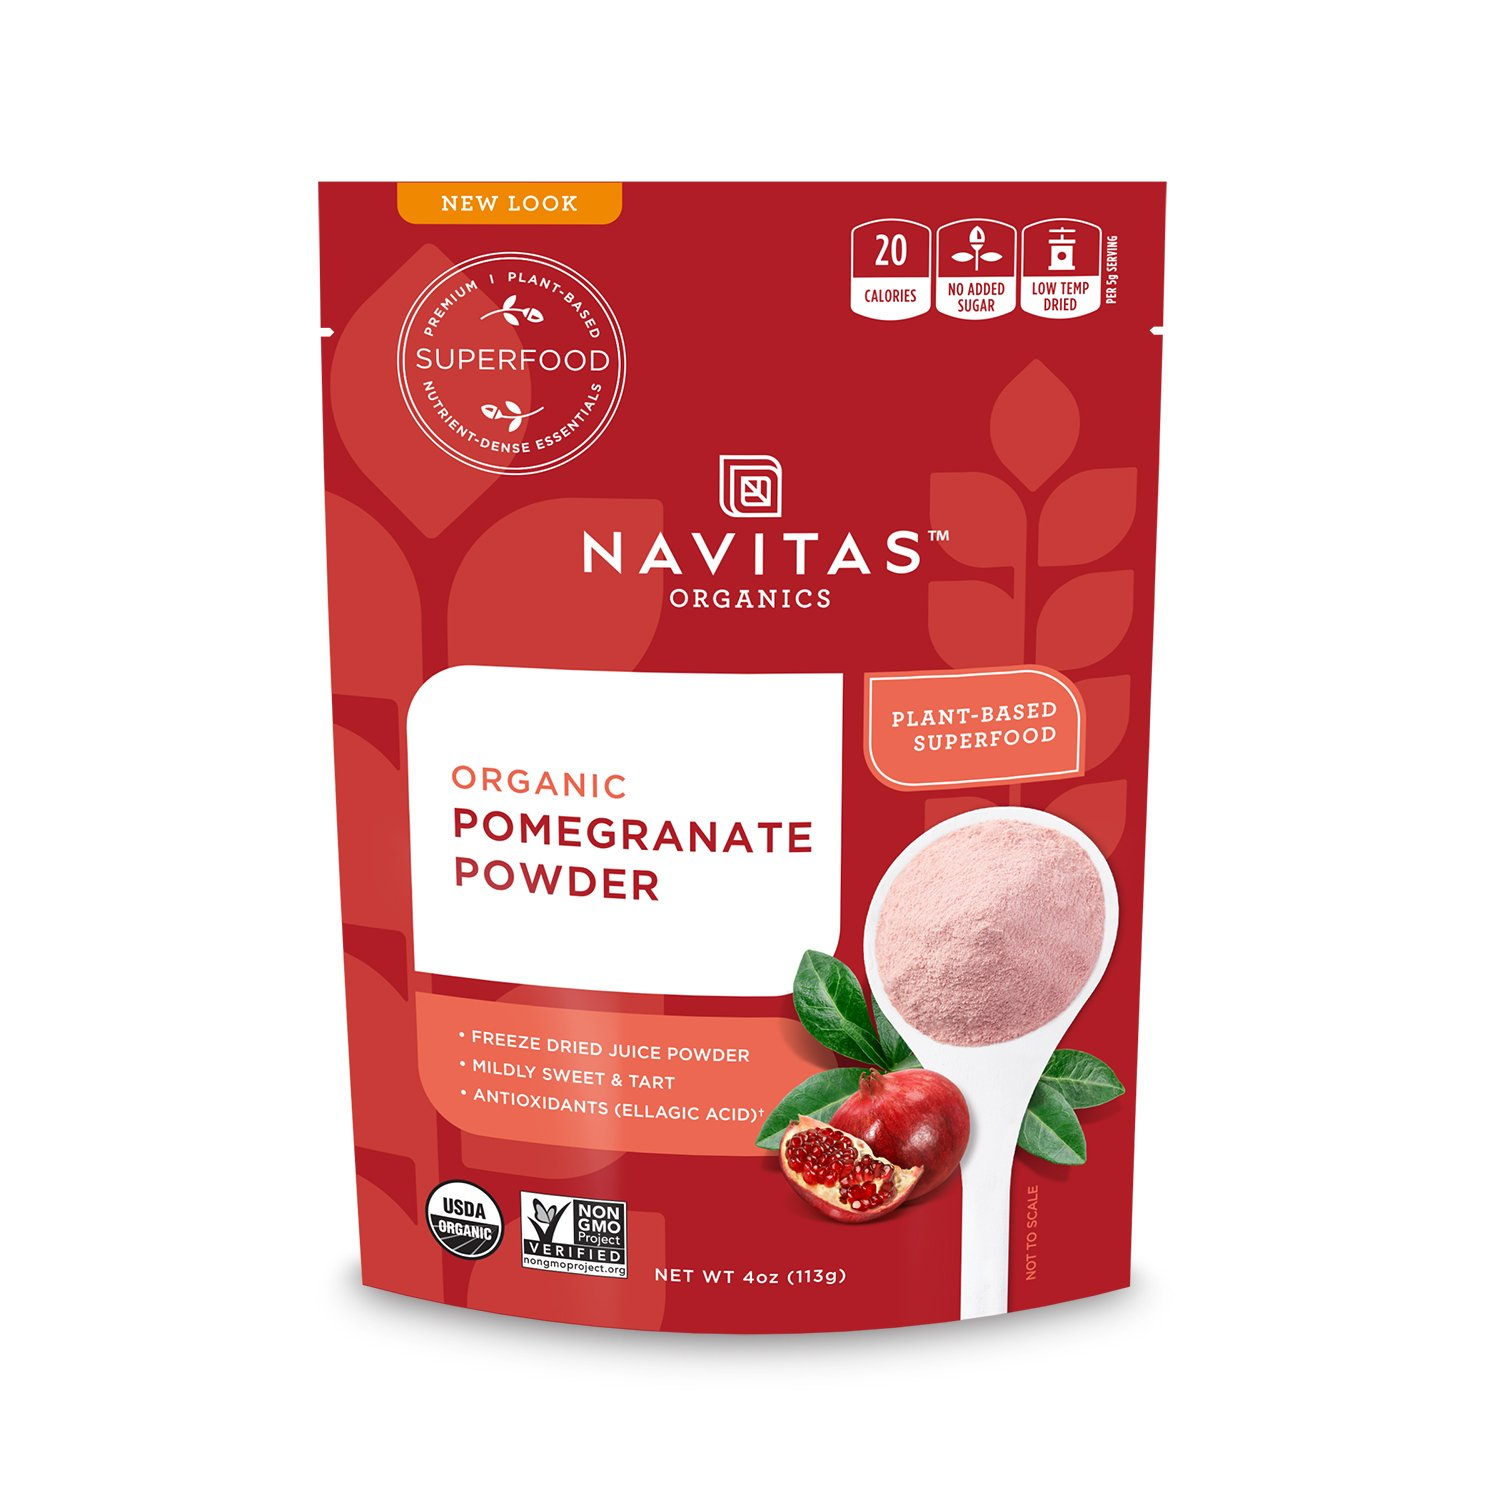 Navitas Organics Pomegranate Powder, 4 Ounce